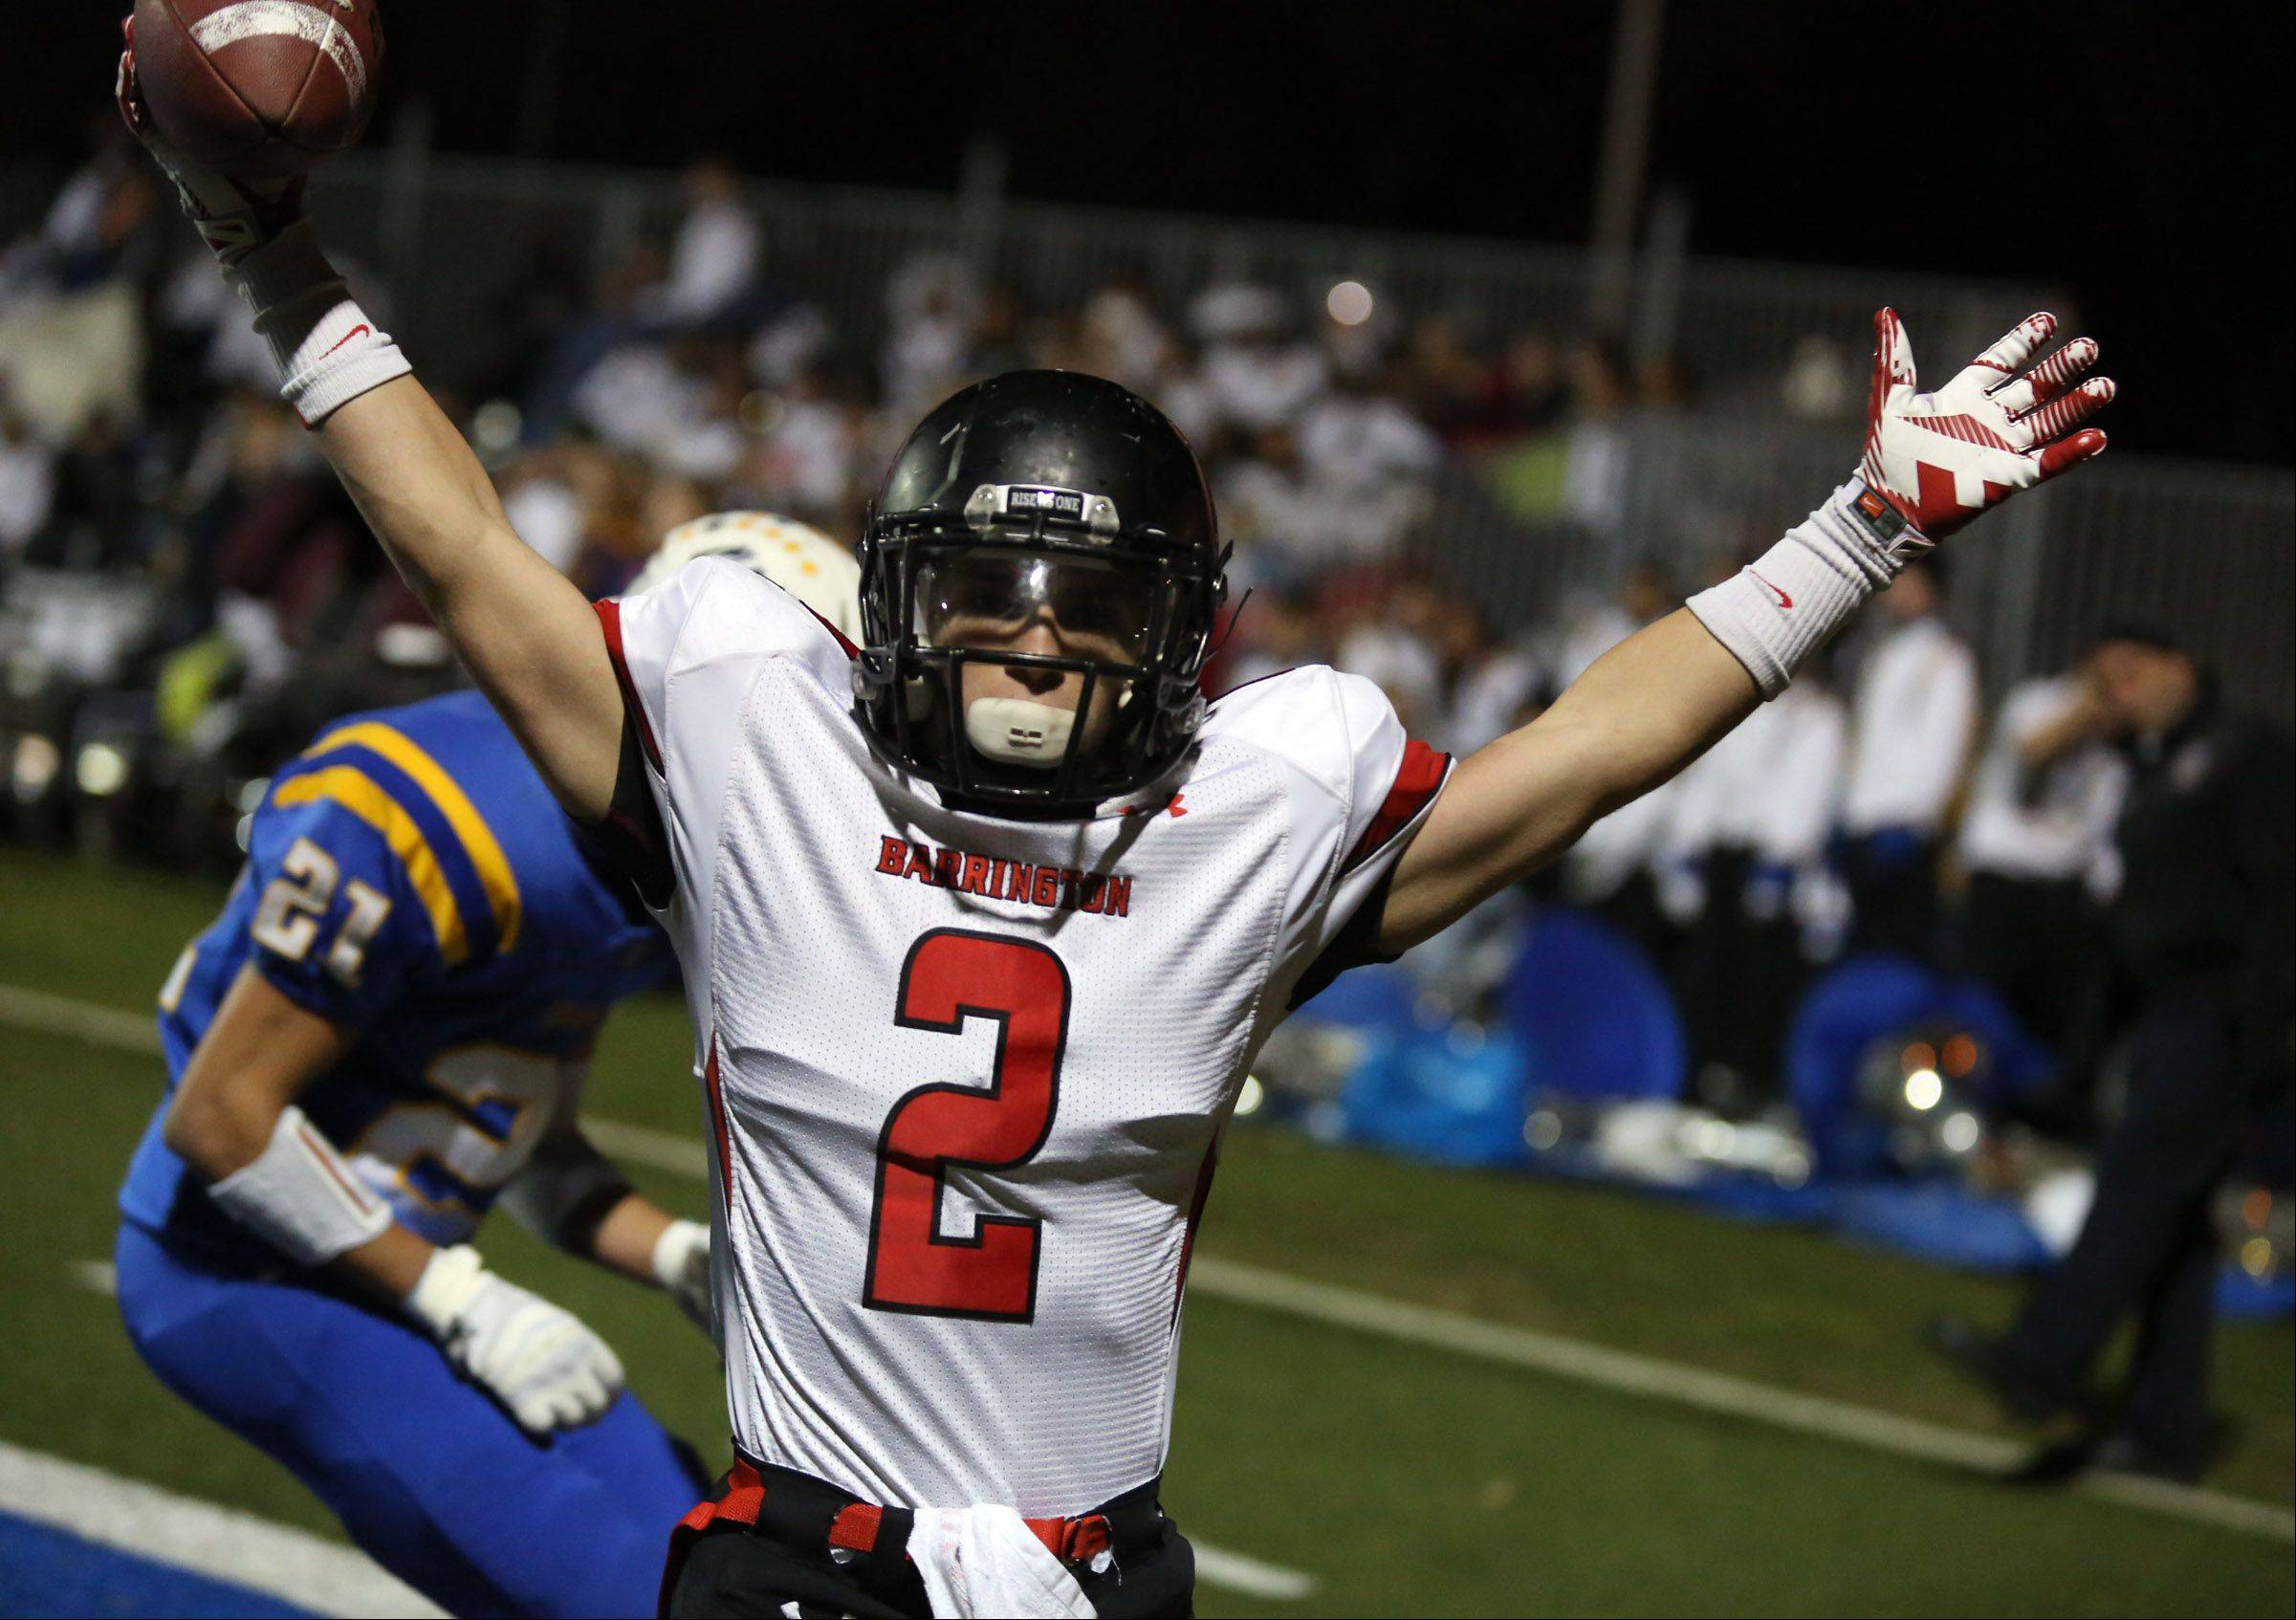 Barrington receiver Matt Moran celebrates a touchdown on a pass from quarterback Daniel Kubiuk with less than three minutes left Saturday against host Warren.